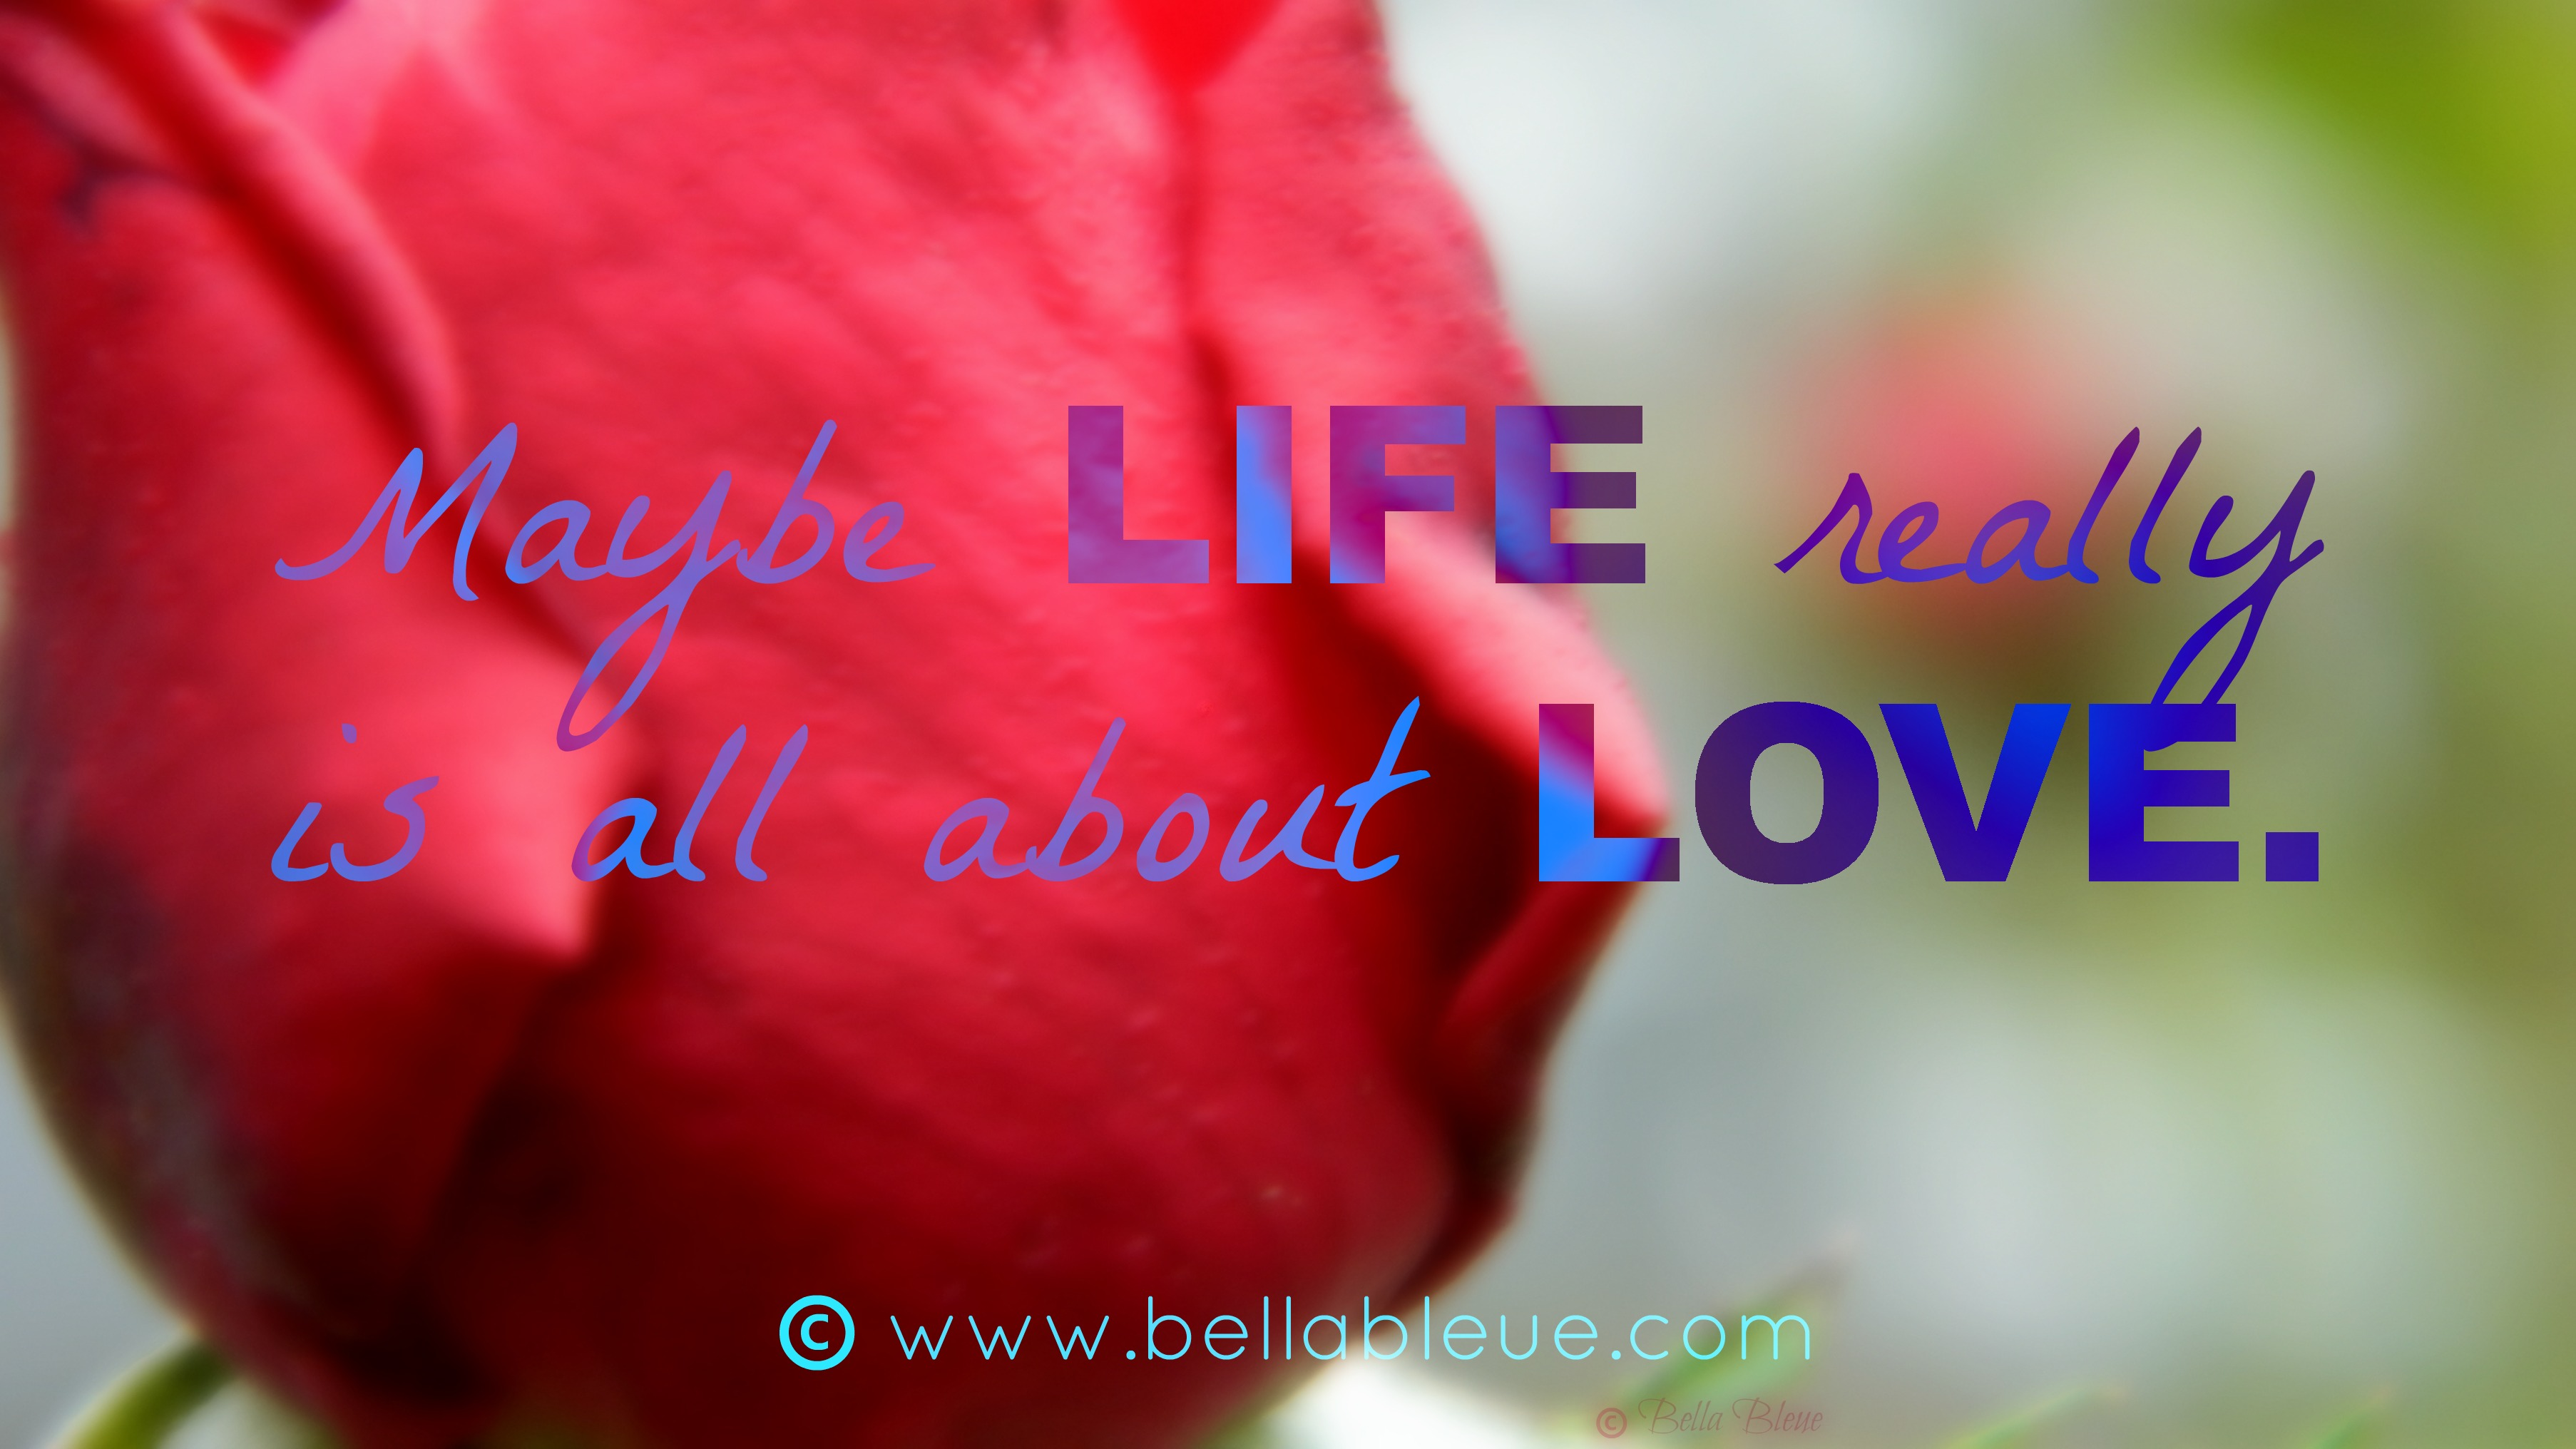 Spiritual Quotes About Love And Life December 2012  Bella Bleue Healing™